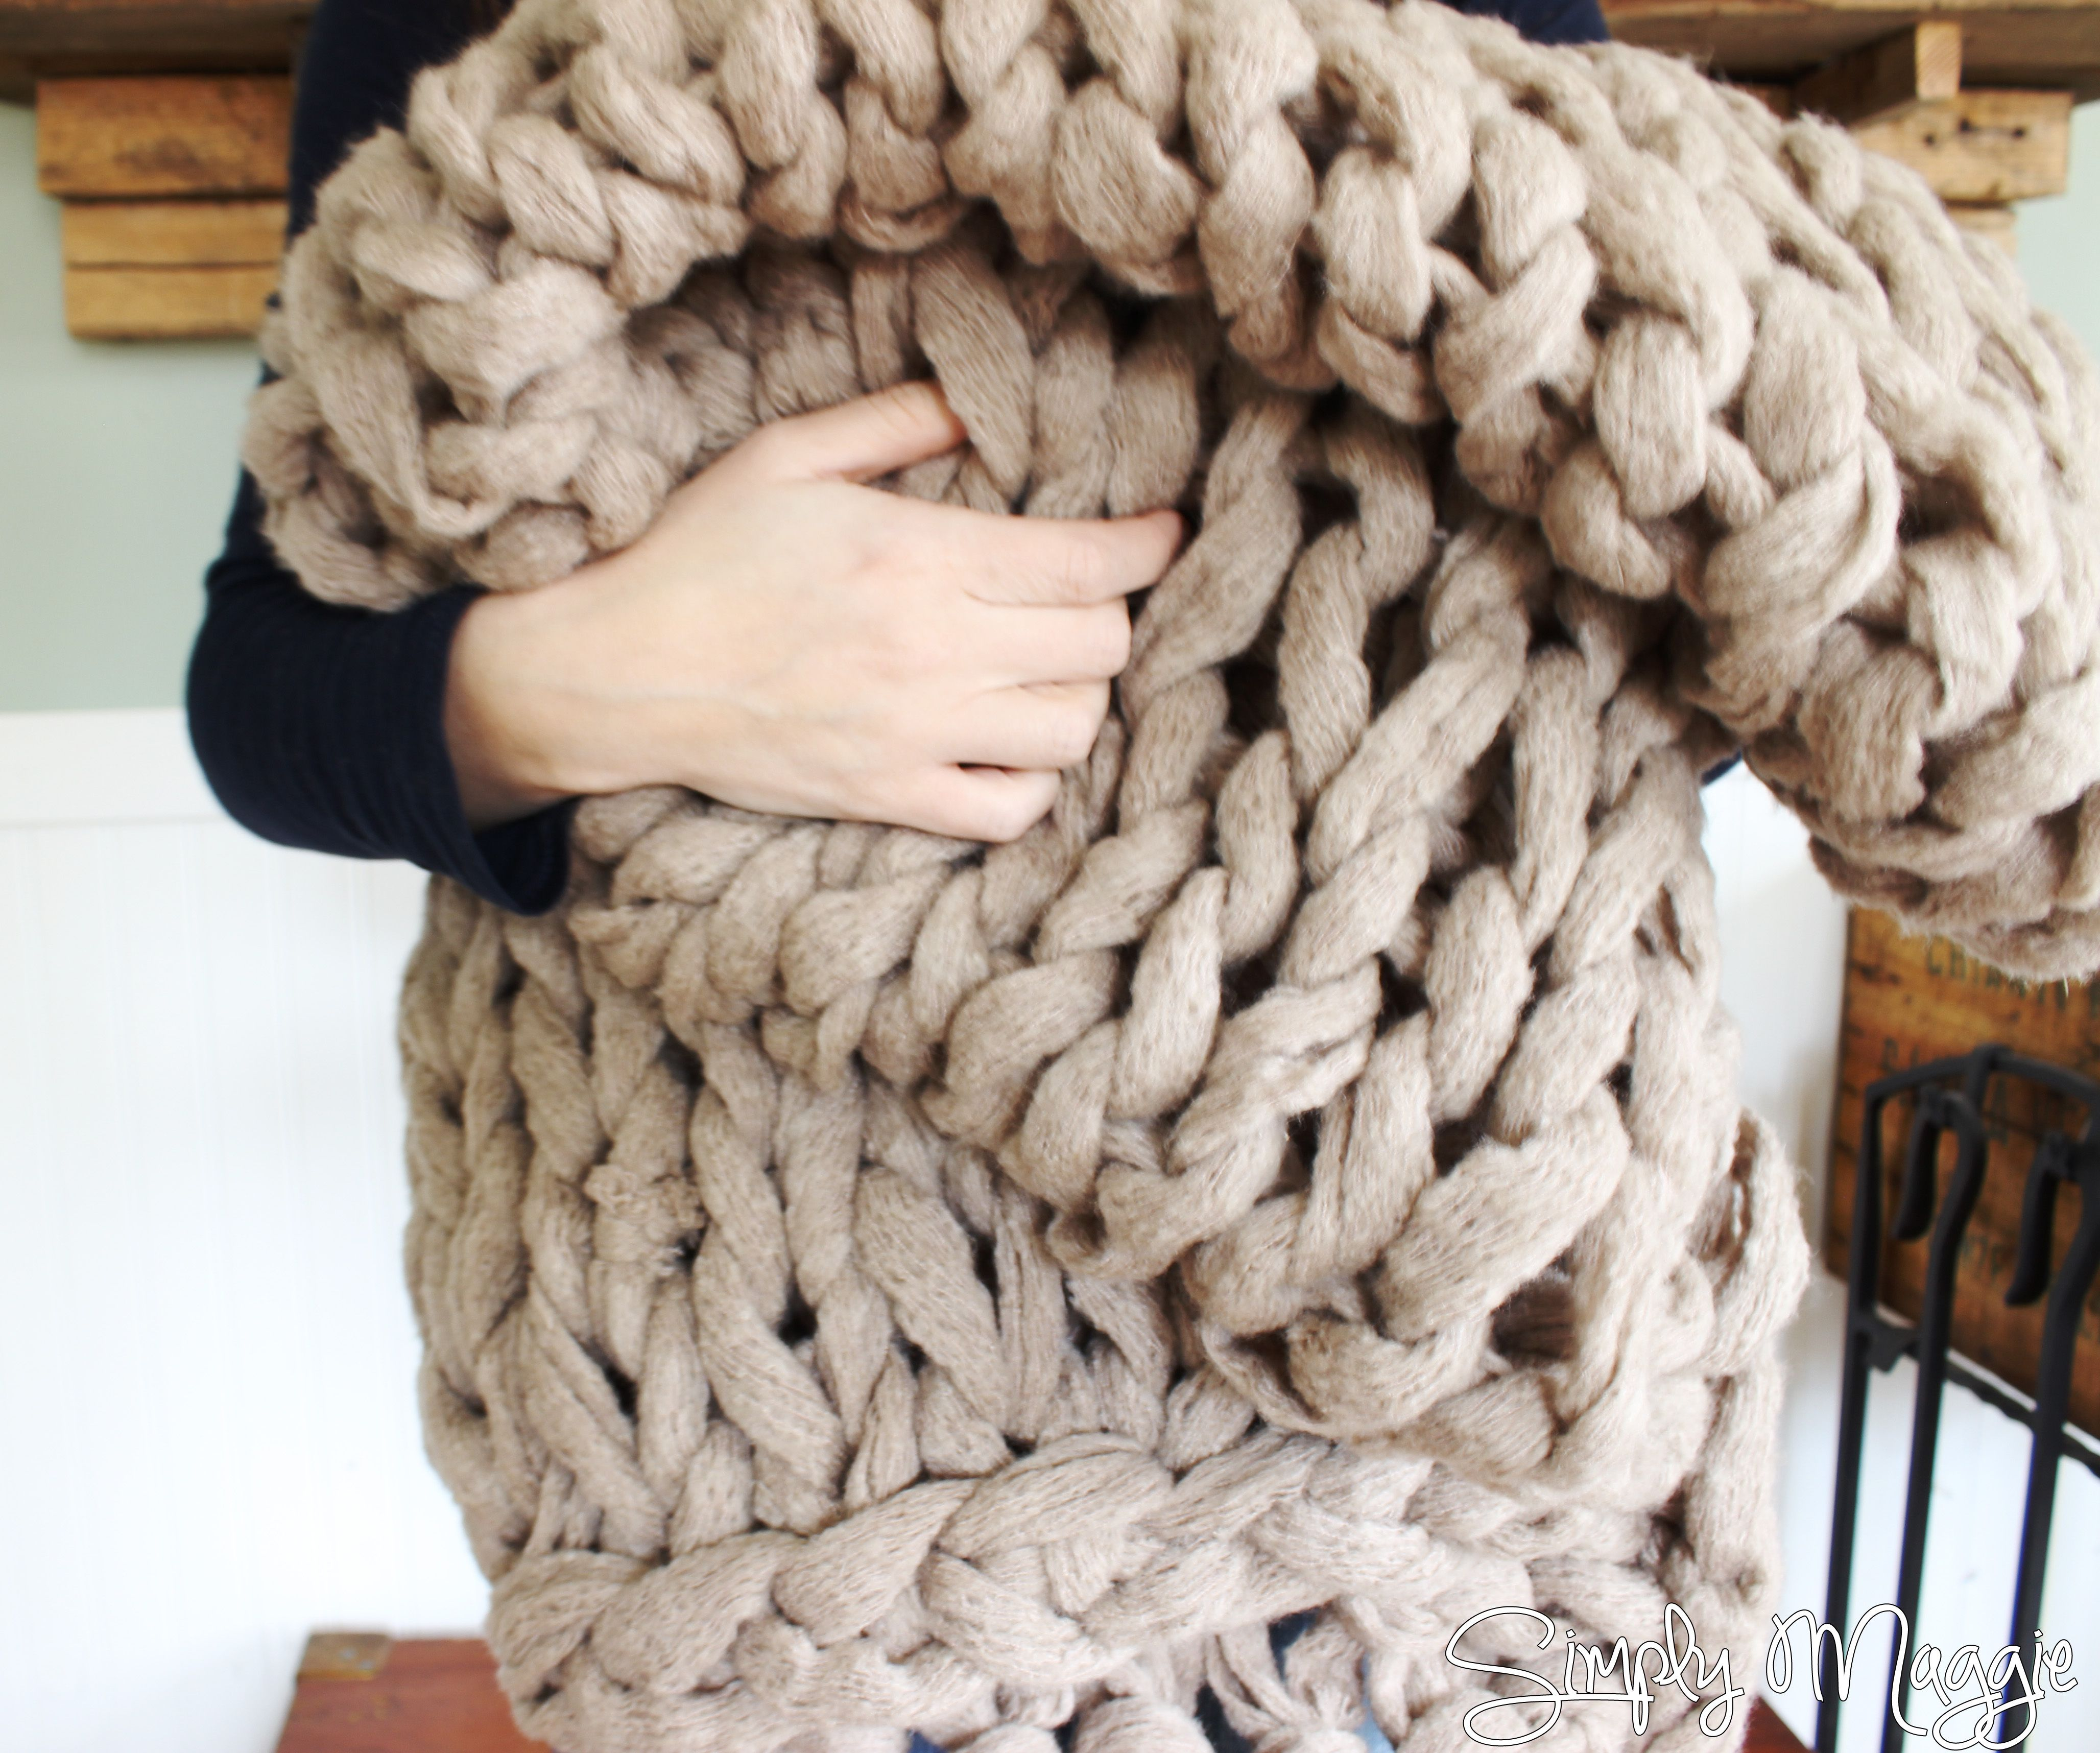 Super Chunky Yarn Arm Knitting Blanket Bulky Yarn Hand Knitting DIY Blanket